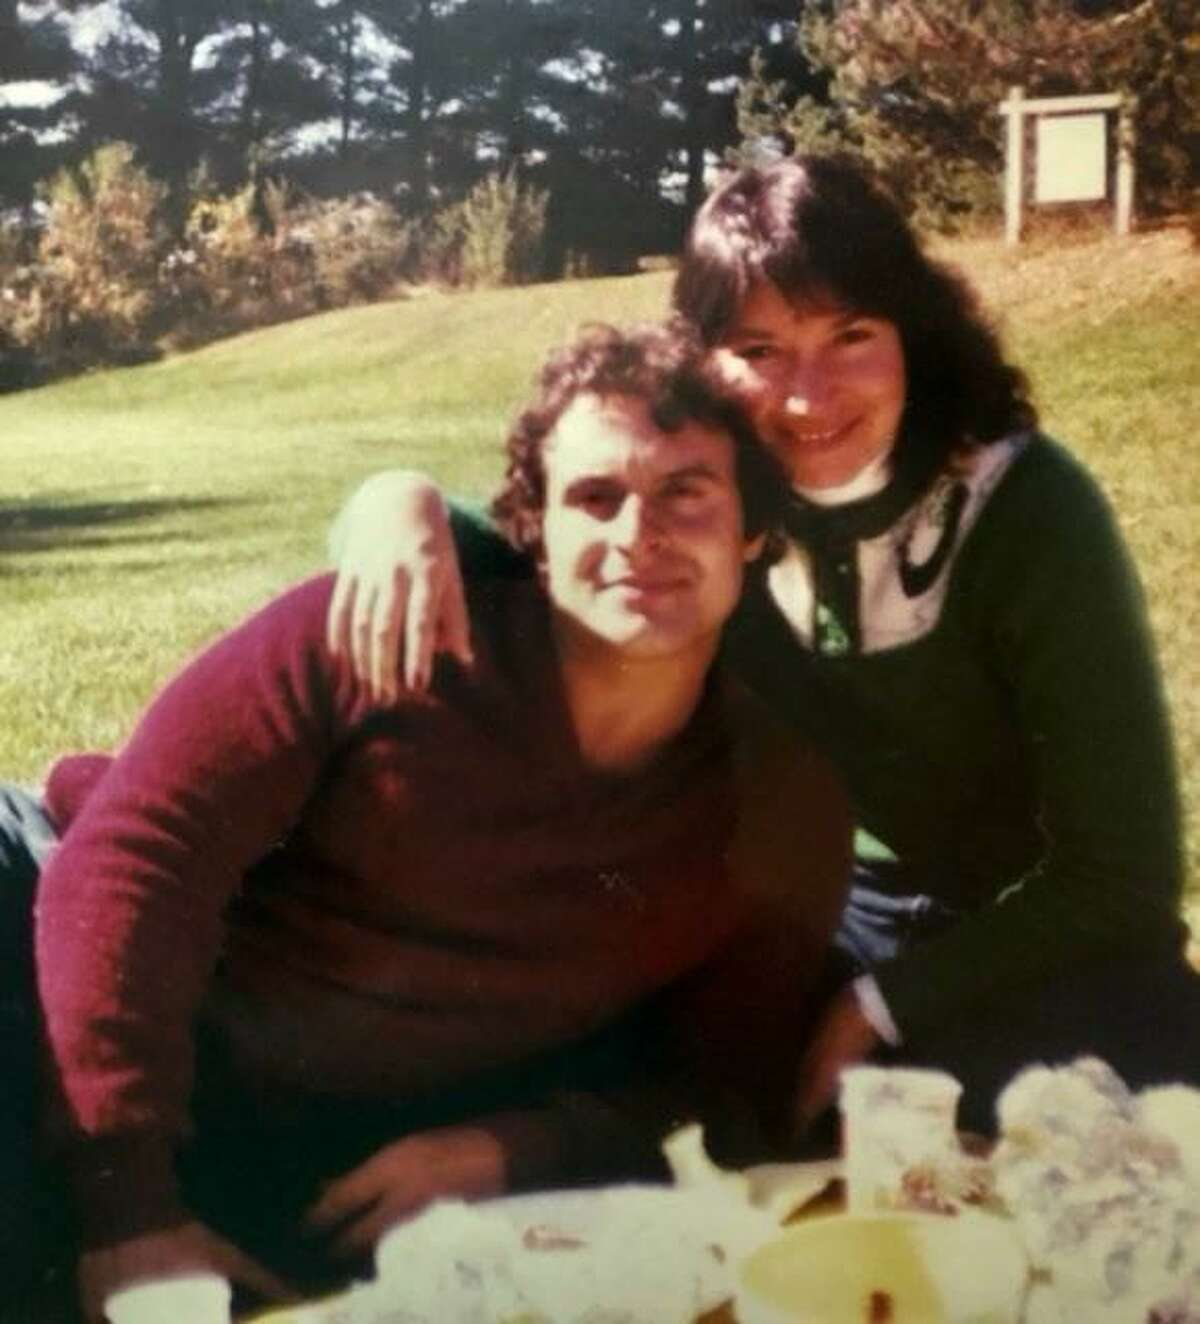 Pete and Karen Leonetti of Madison as a young couple. Karen said she promised Pete and herself that she would always dress nice, put on makeup, and make nice suppers for Pete.